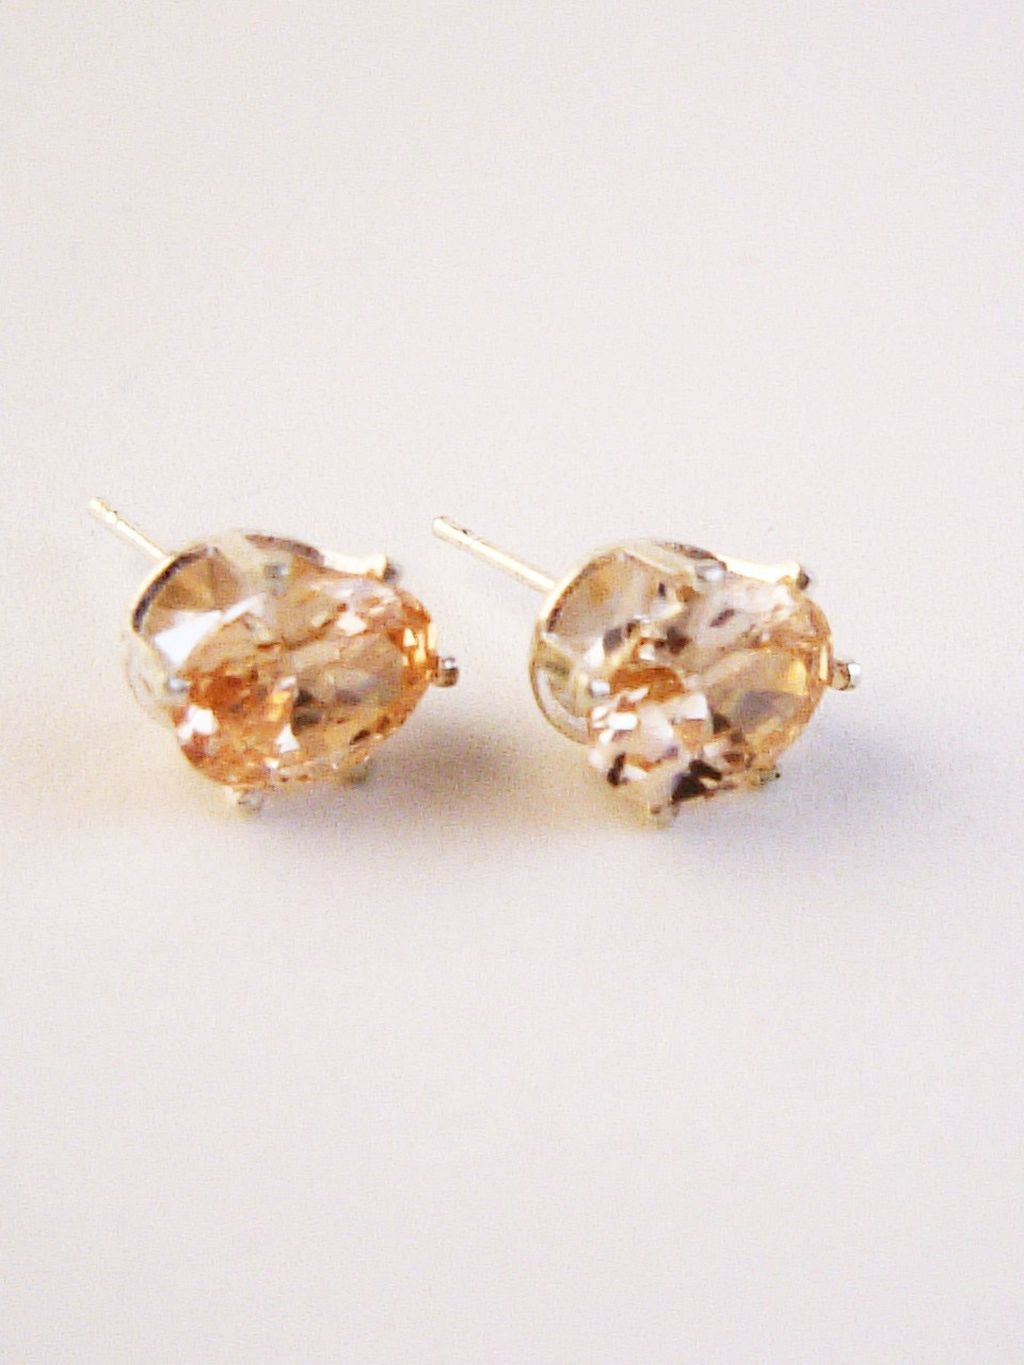 Topaz Oval Cut Silver Stud Earrings Genuine CZ Cubic Zirconia